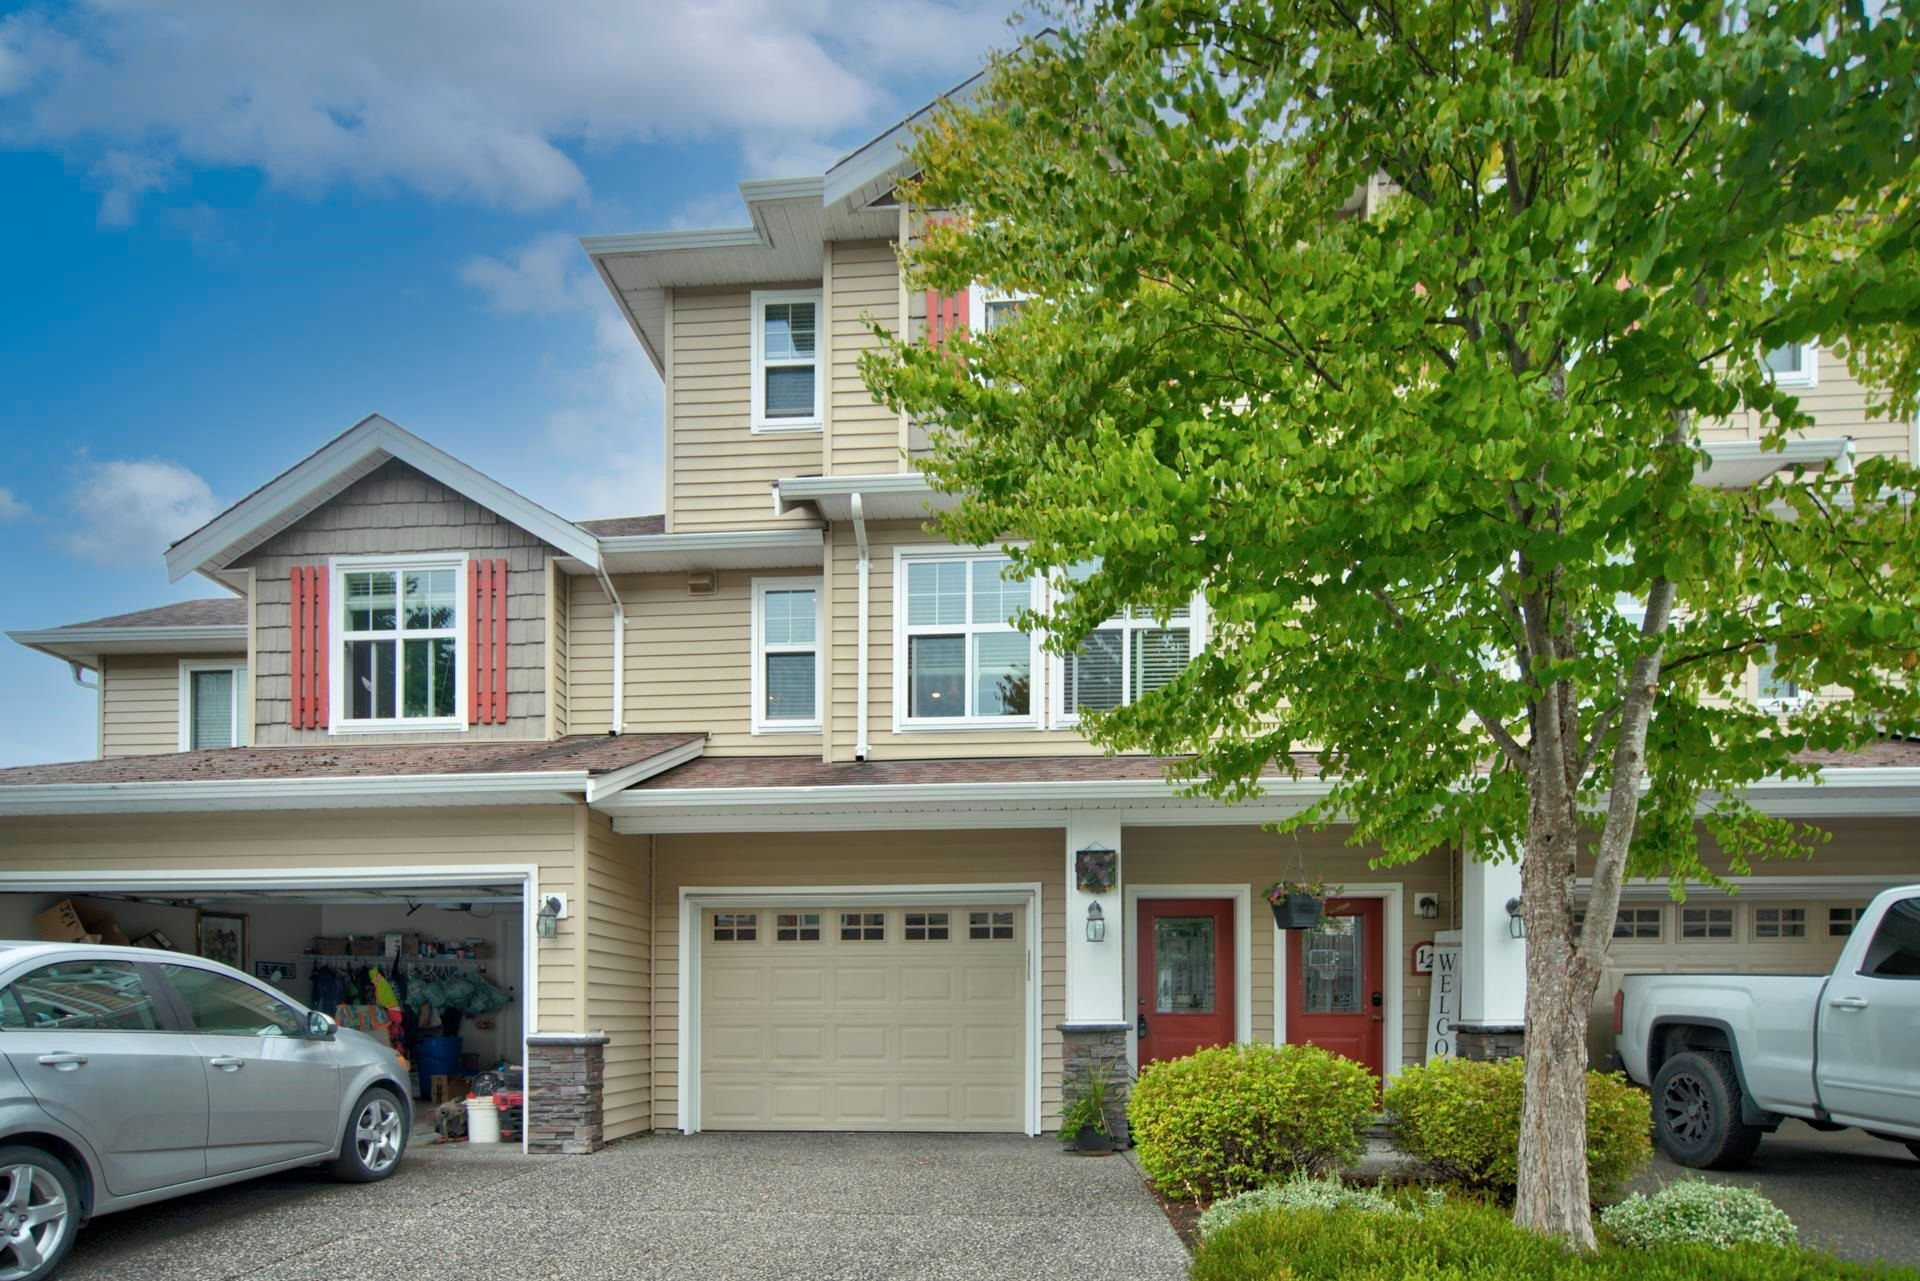 """Main Photo: 11 45152 WELLS Road in Chilliwack: Sardis West Vedder Rd Townhouse for sale in """"MAYBERRY LAND"""" (Sardis)  : MLS®# R2614722"""